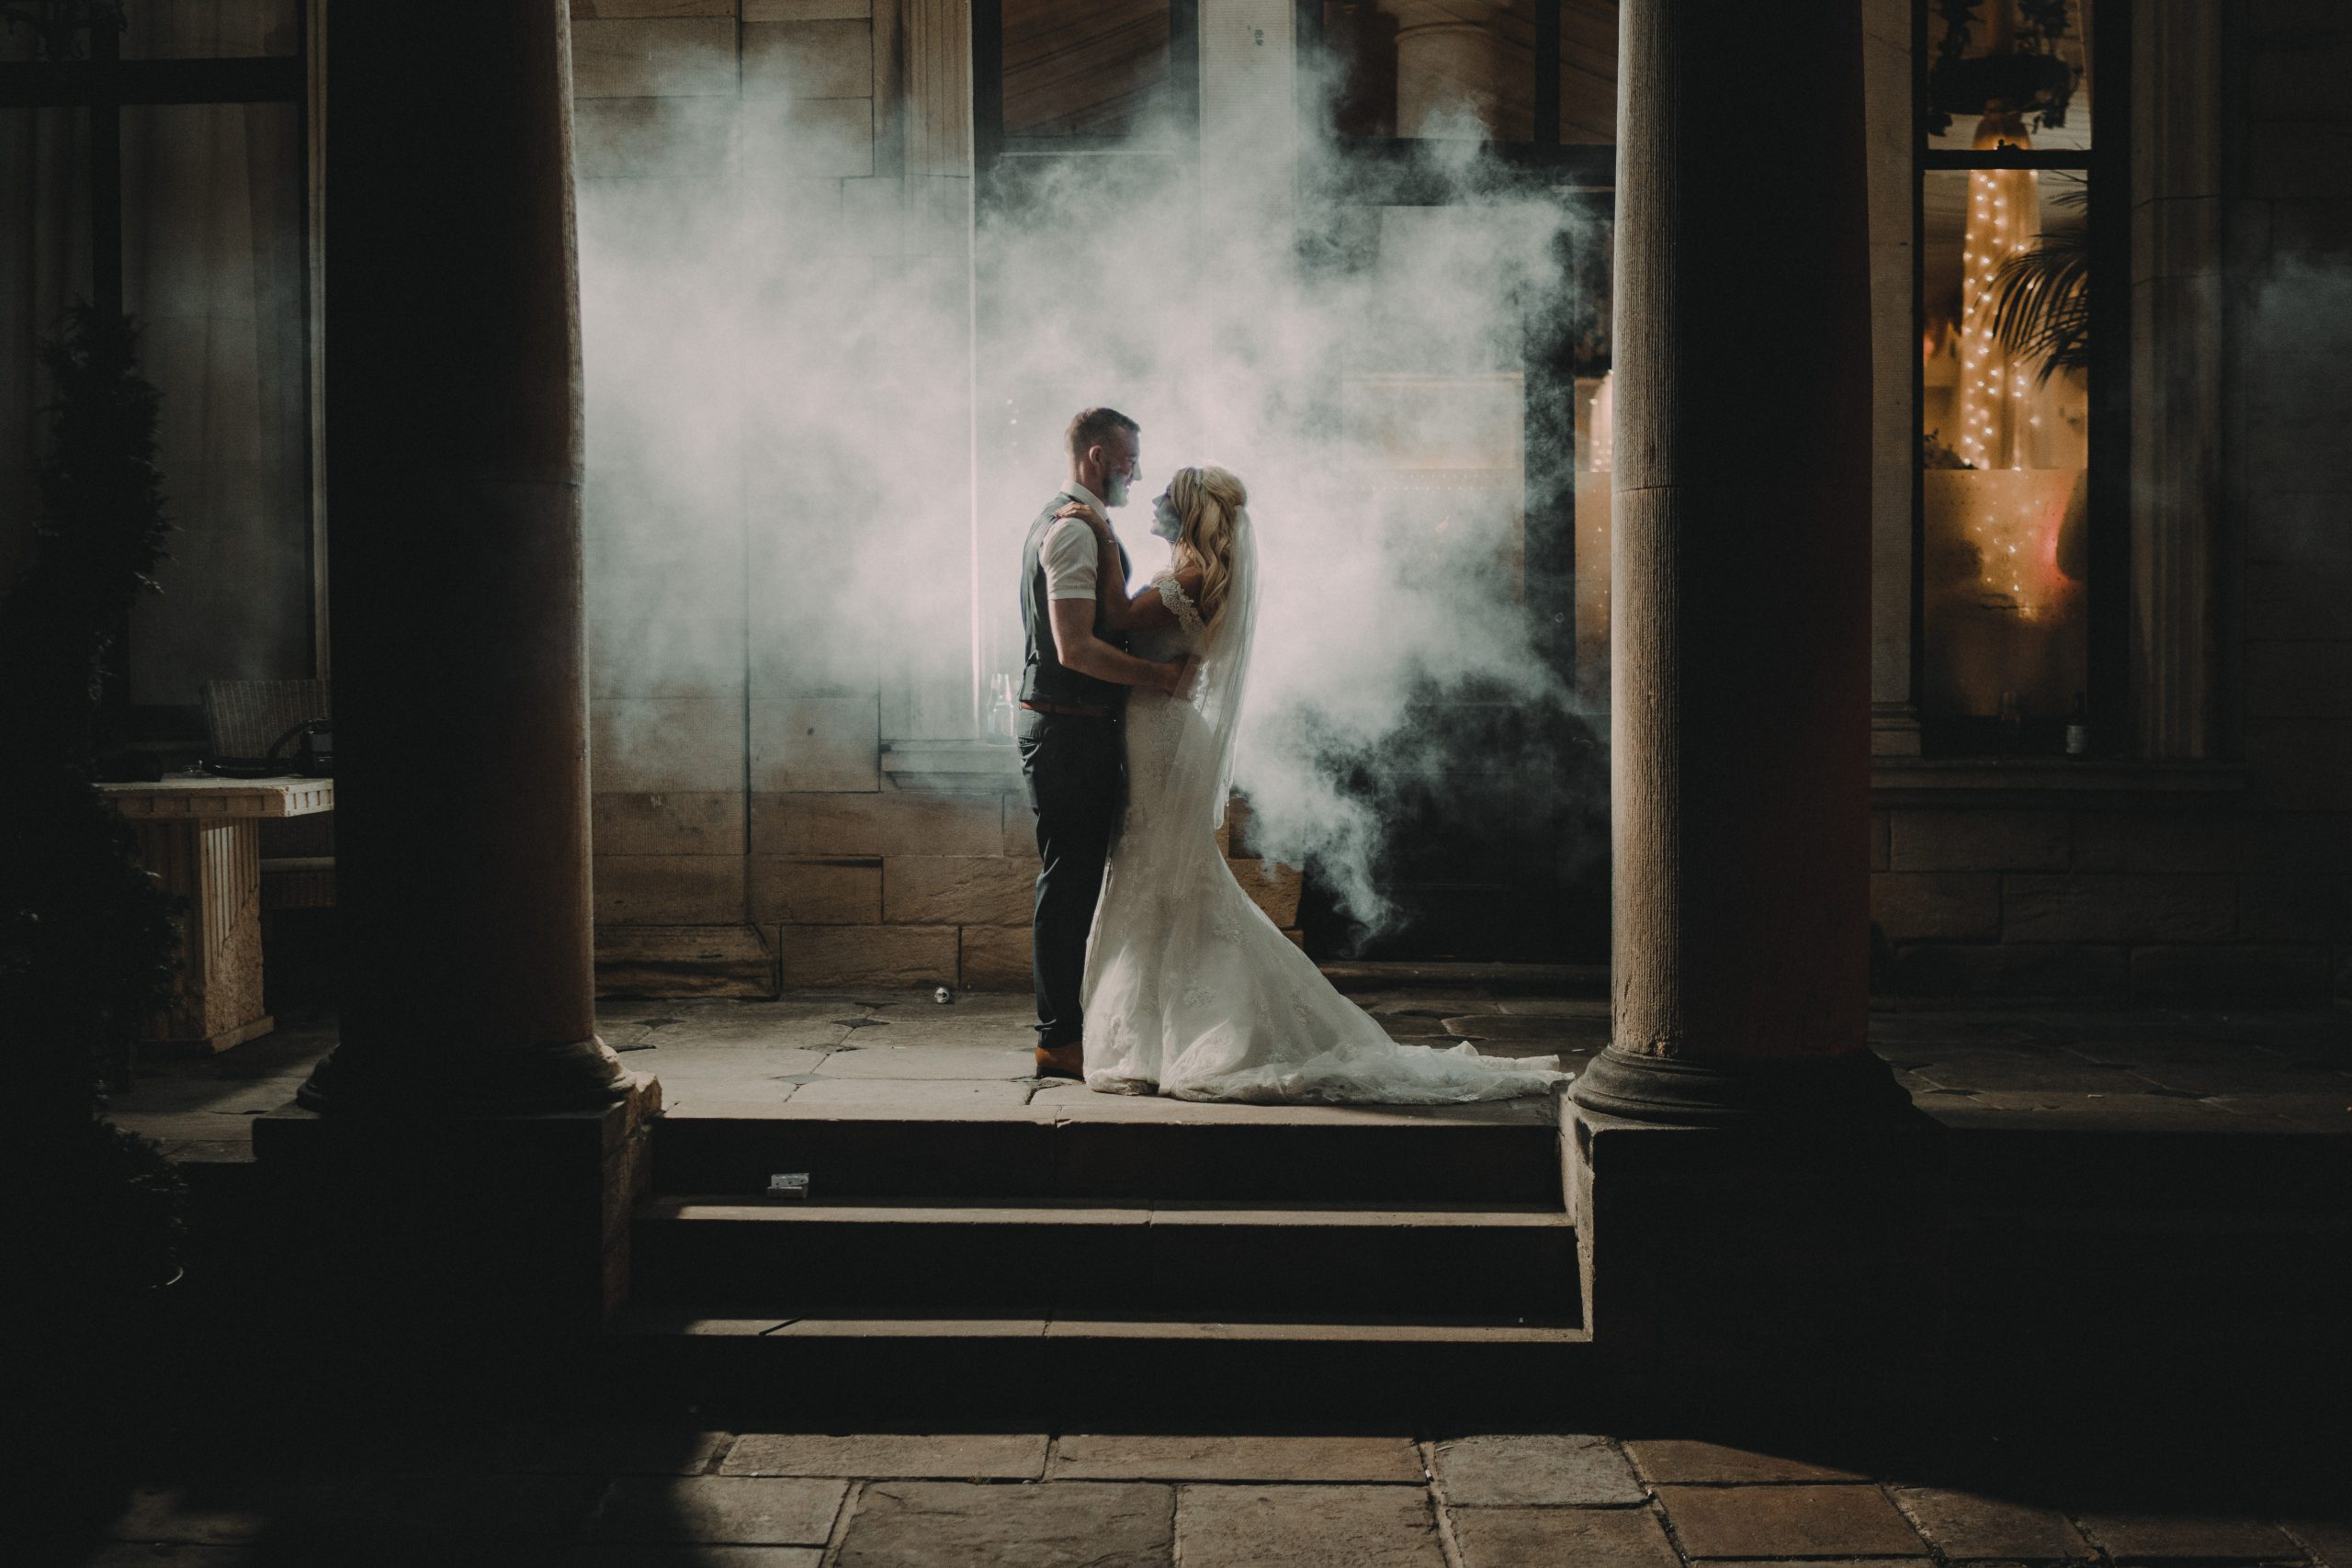 the couple hold each other in smoke